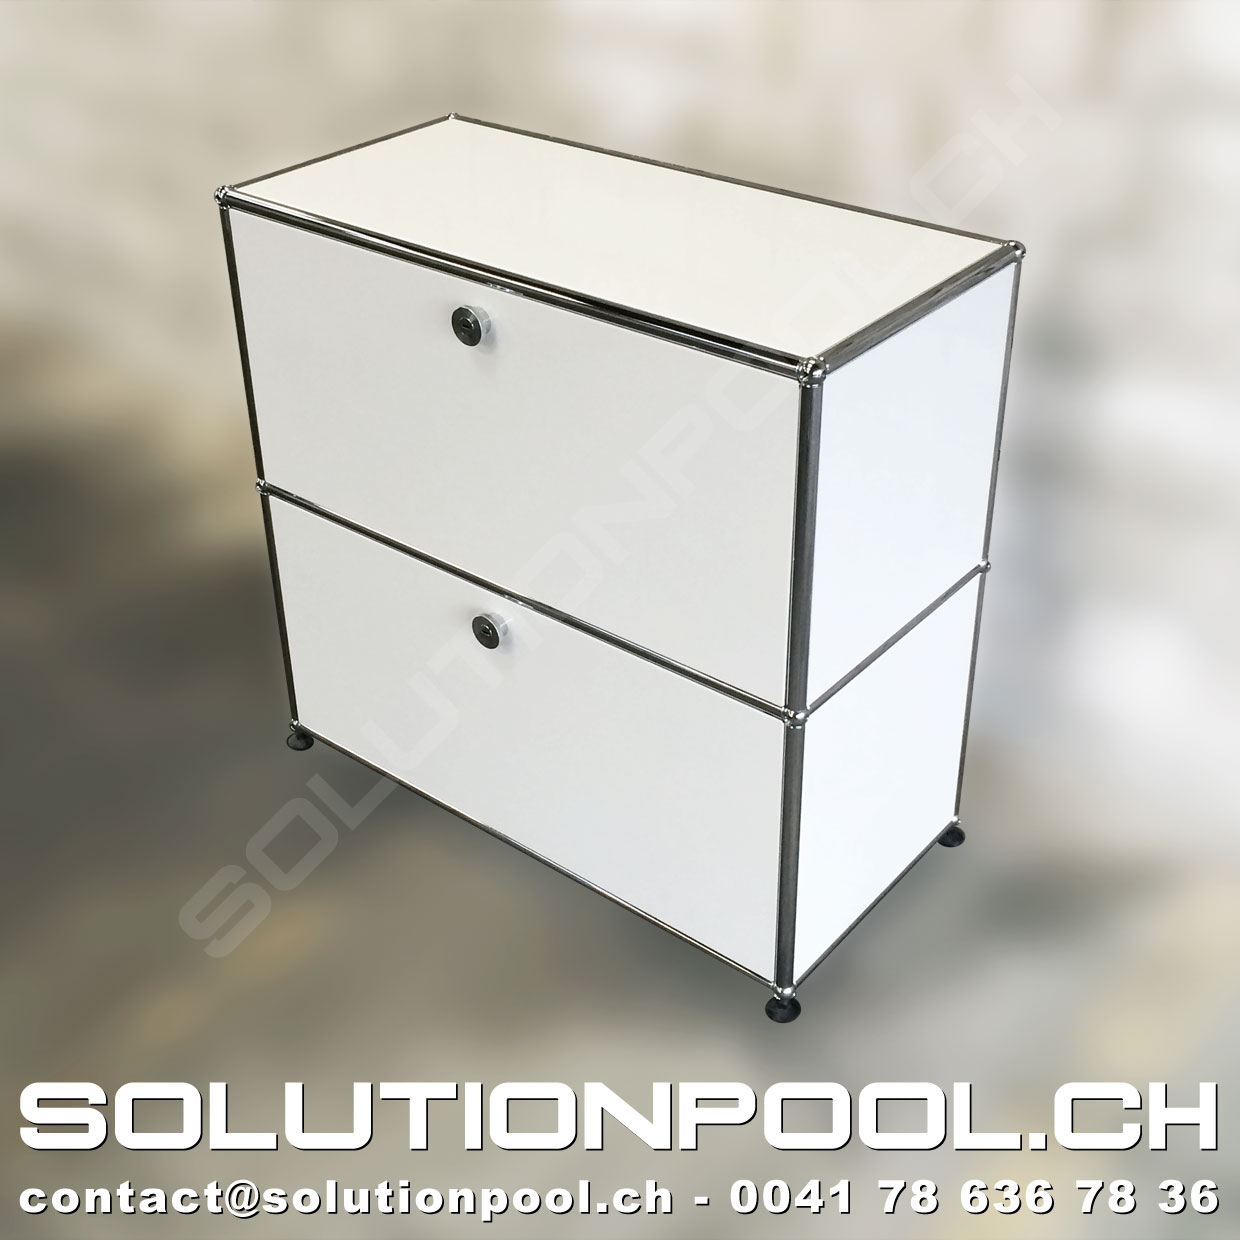 usm highboard weiss solutionpool first class second hand for home and office. Black Bedroom Furniture Sets. Home Design Ideas